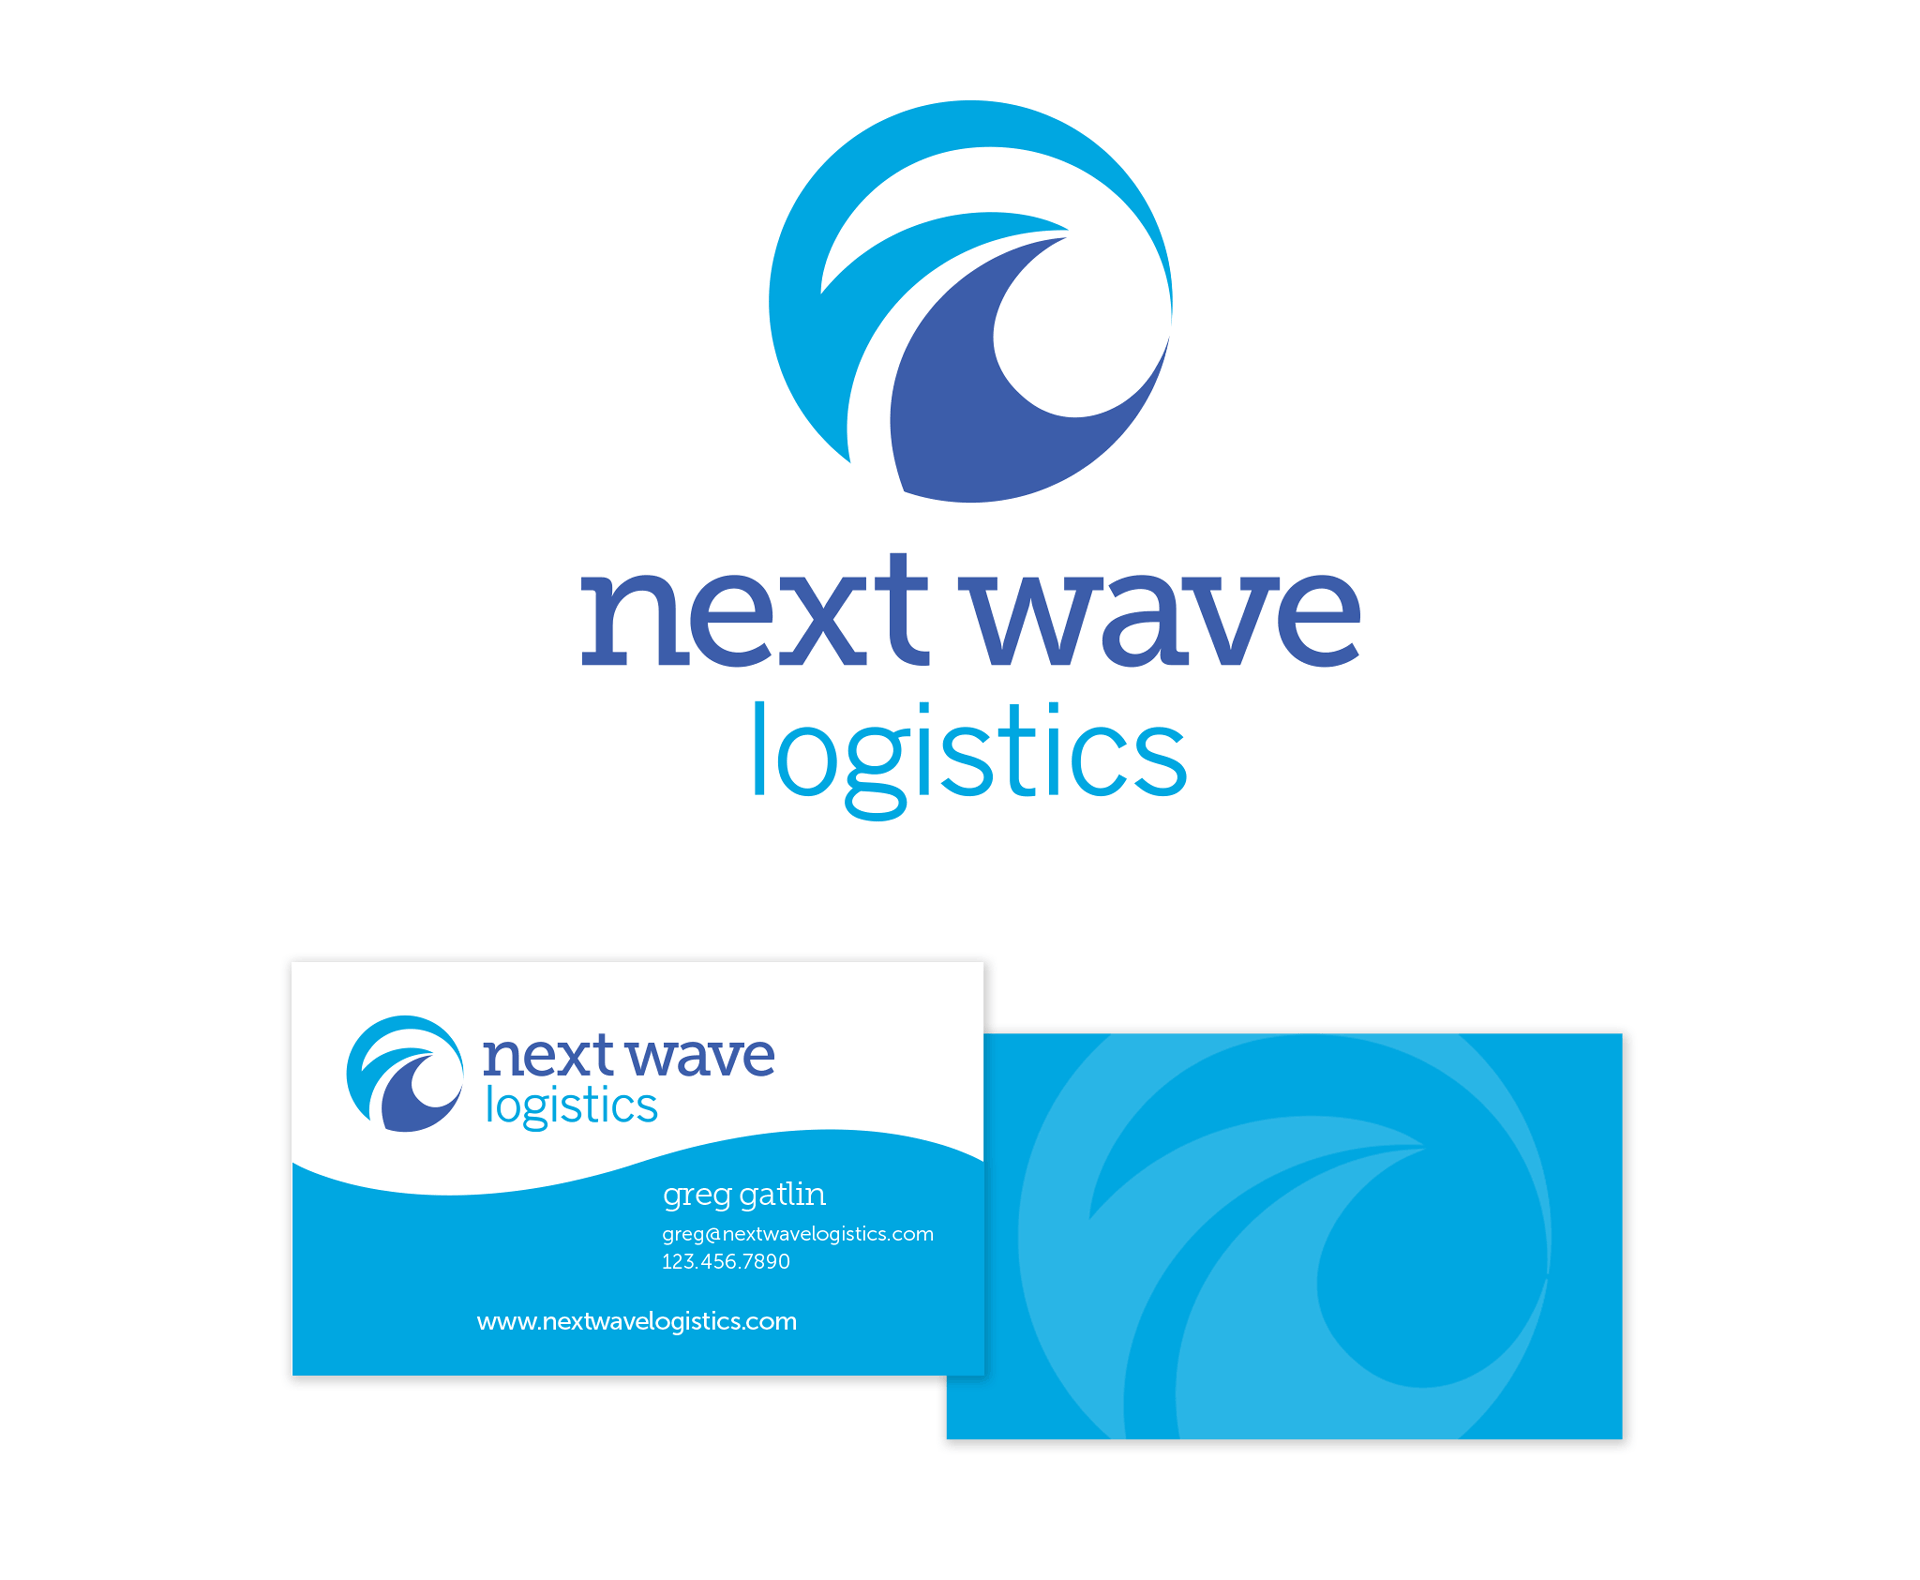 next-wave-logistics-brand-identity